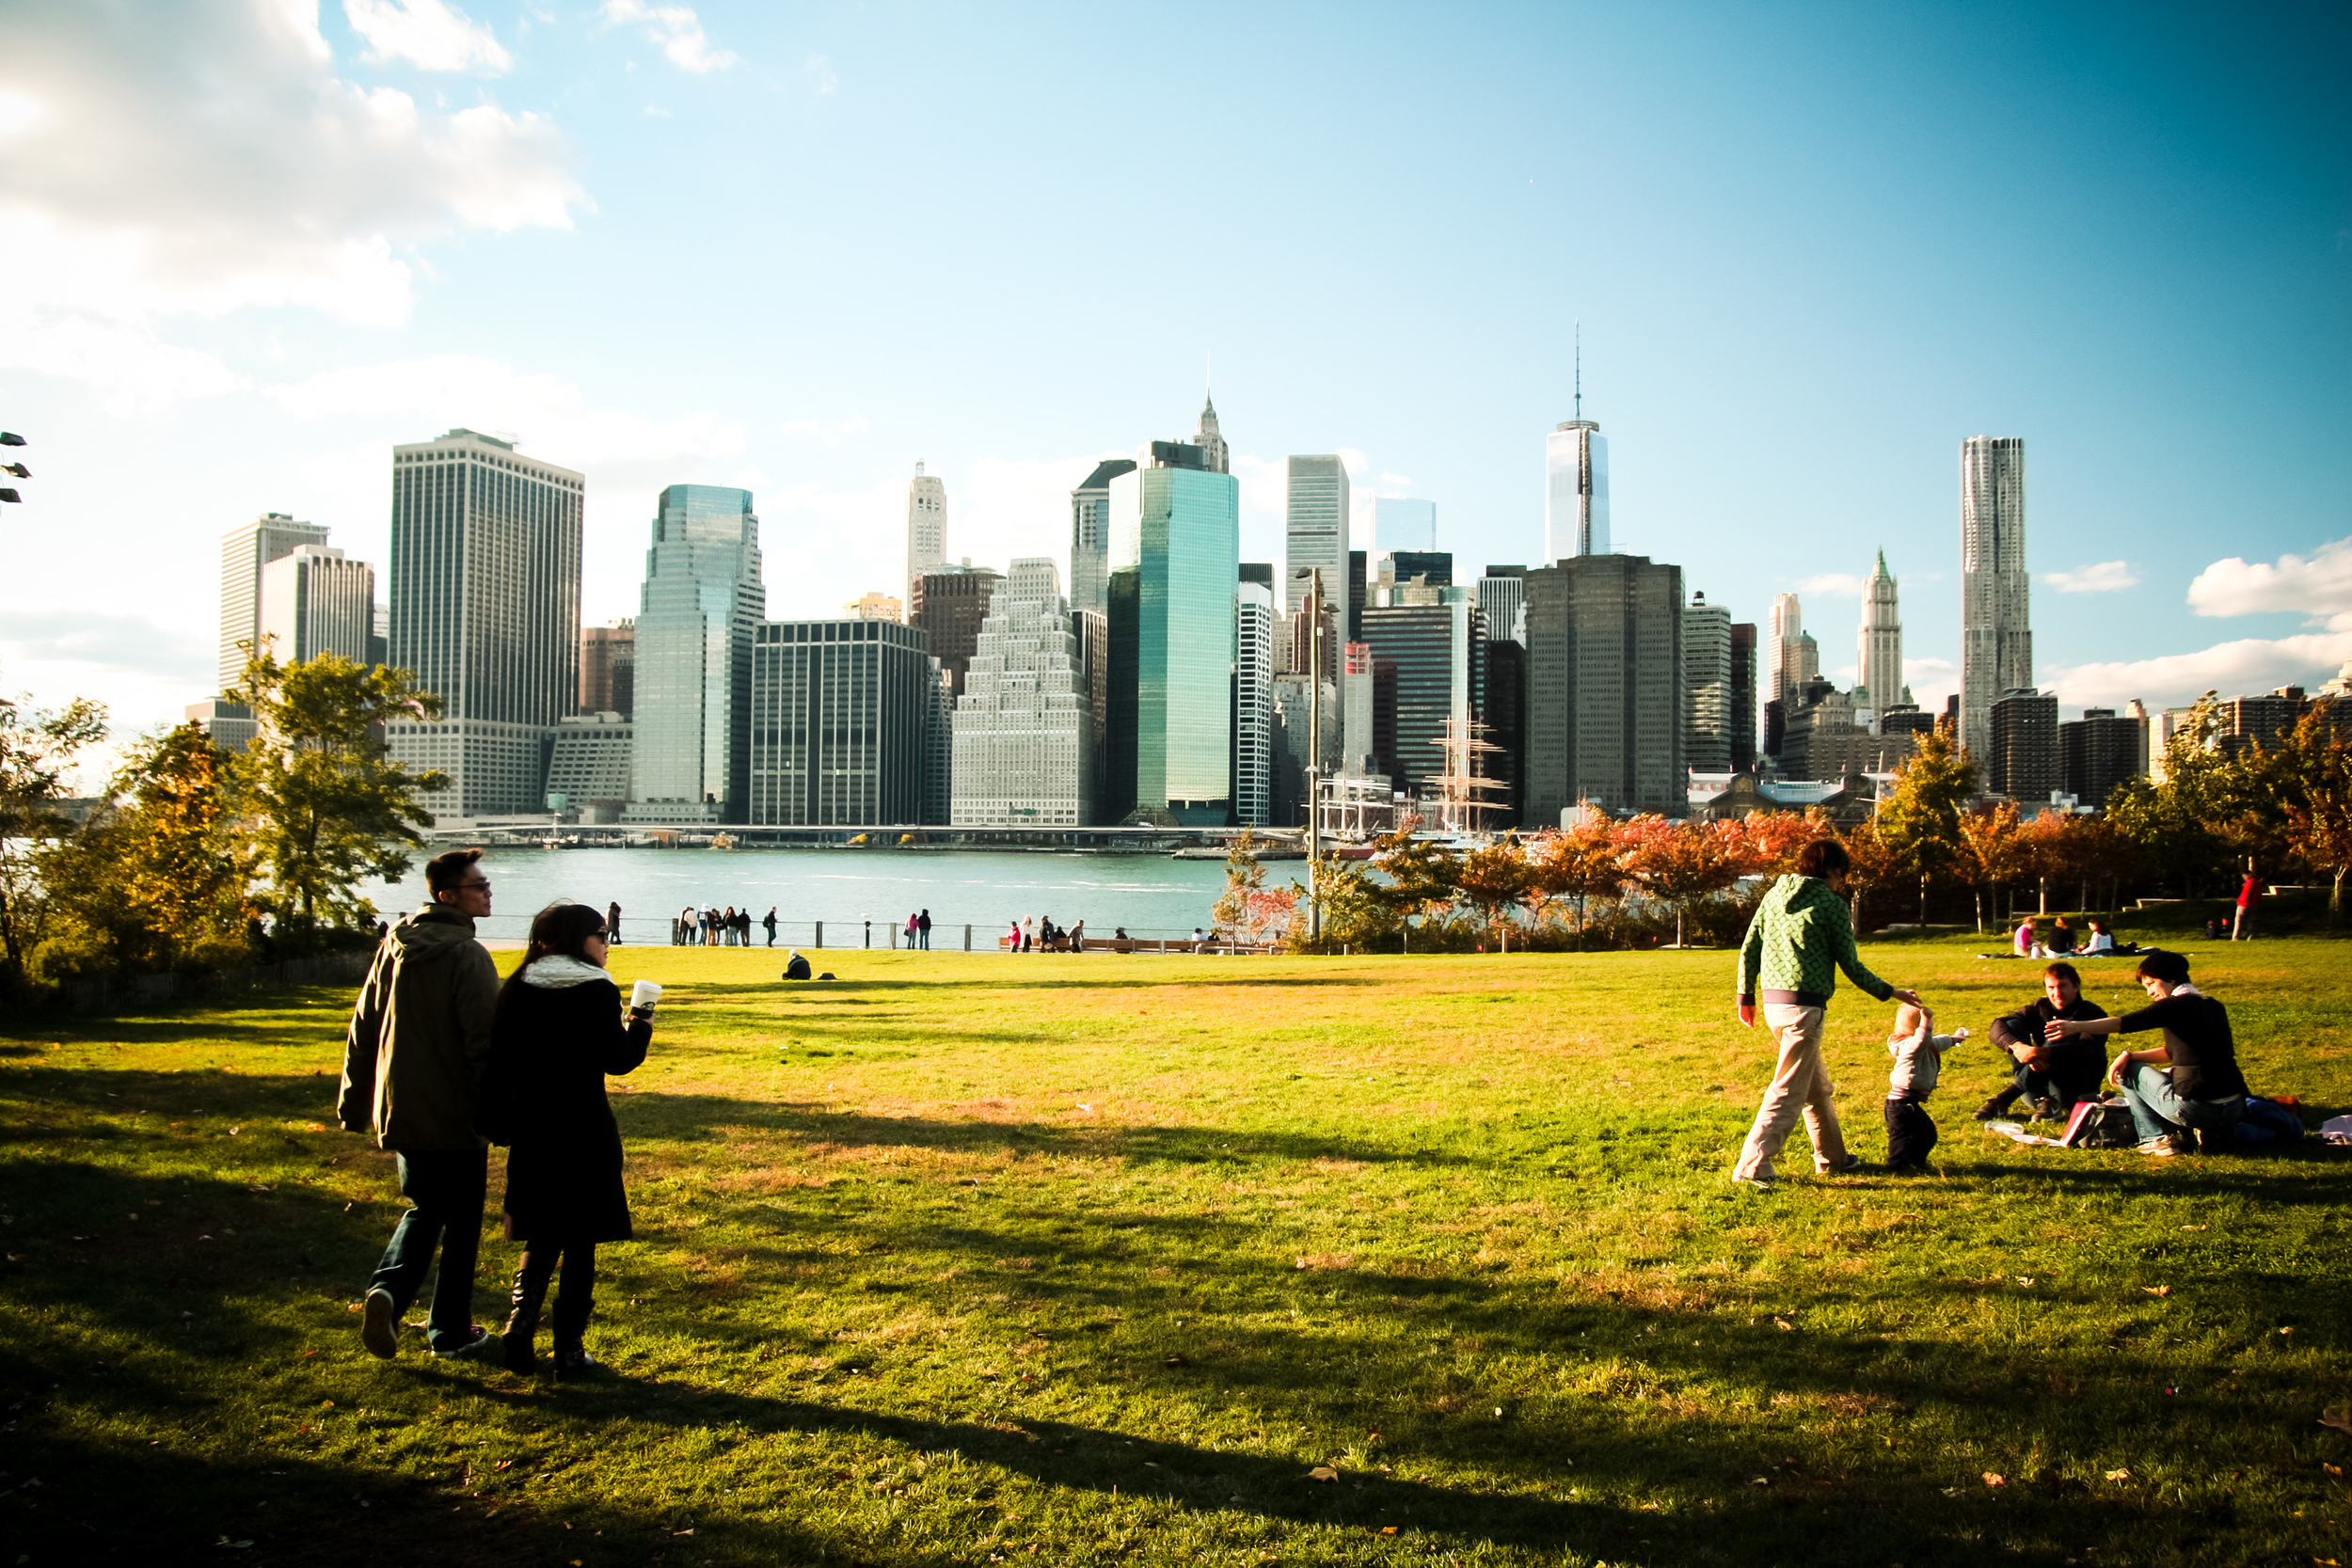 Brooklyn Bridge Park with a view to Lower Manhattan.